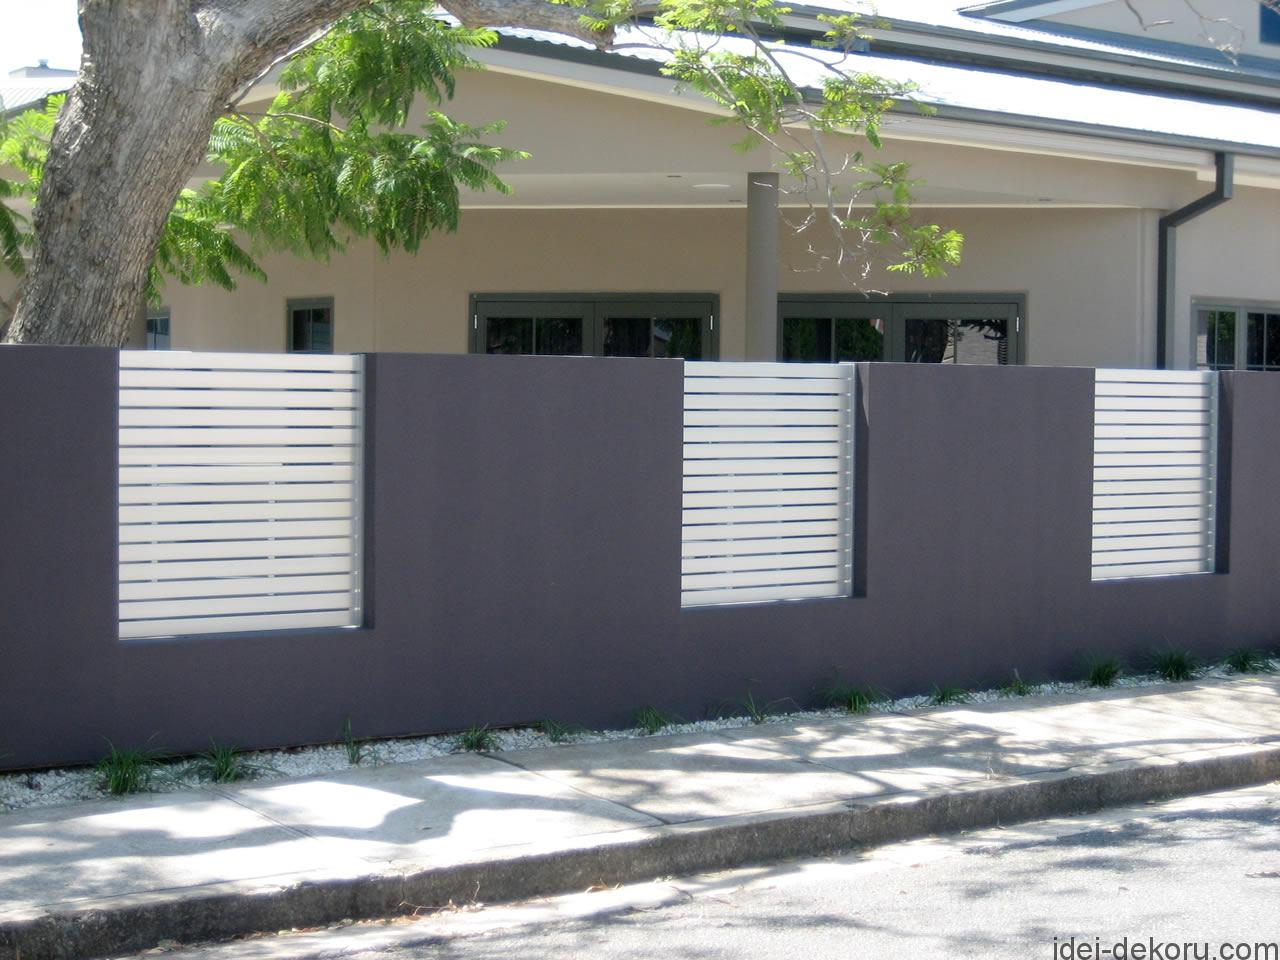 Building-contractor-fence-design-picture-gallery